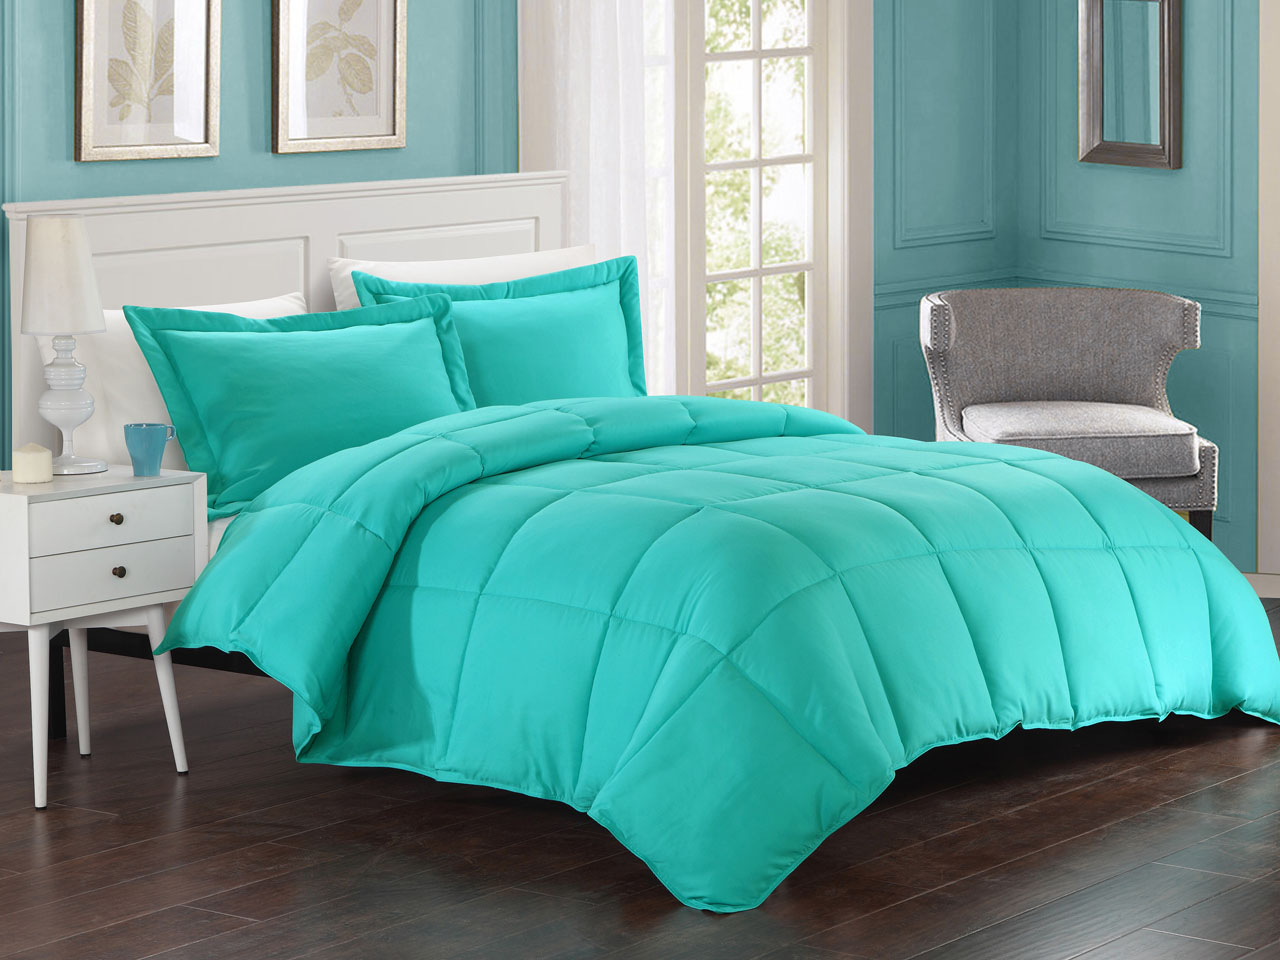 Turquoise down alternative comforter set king